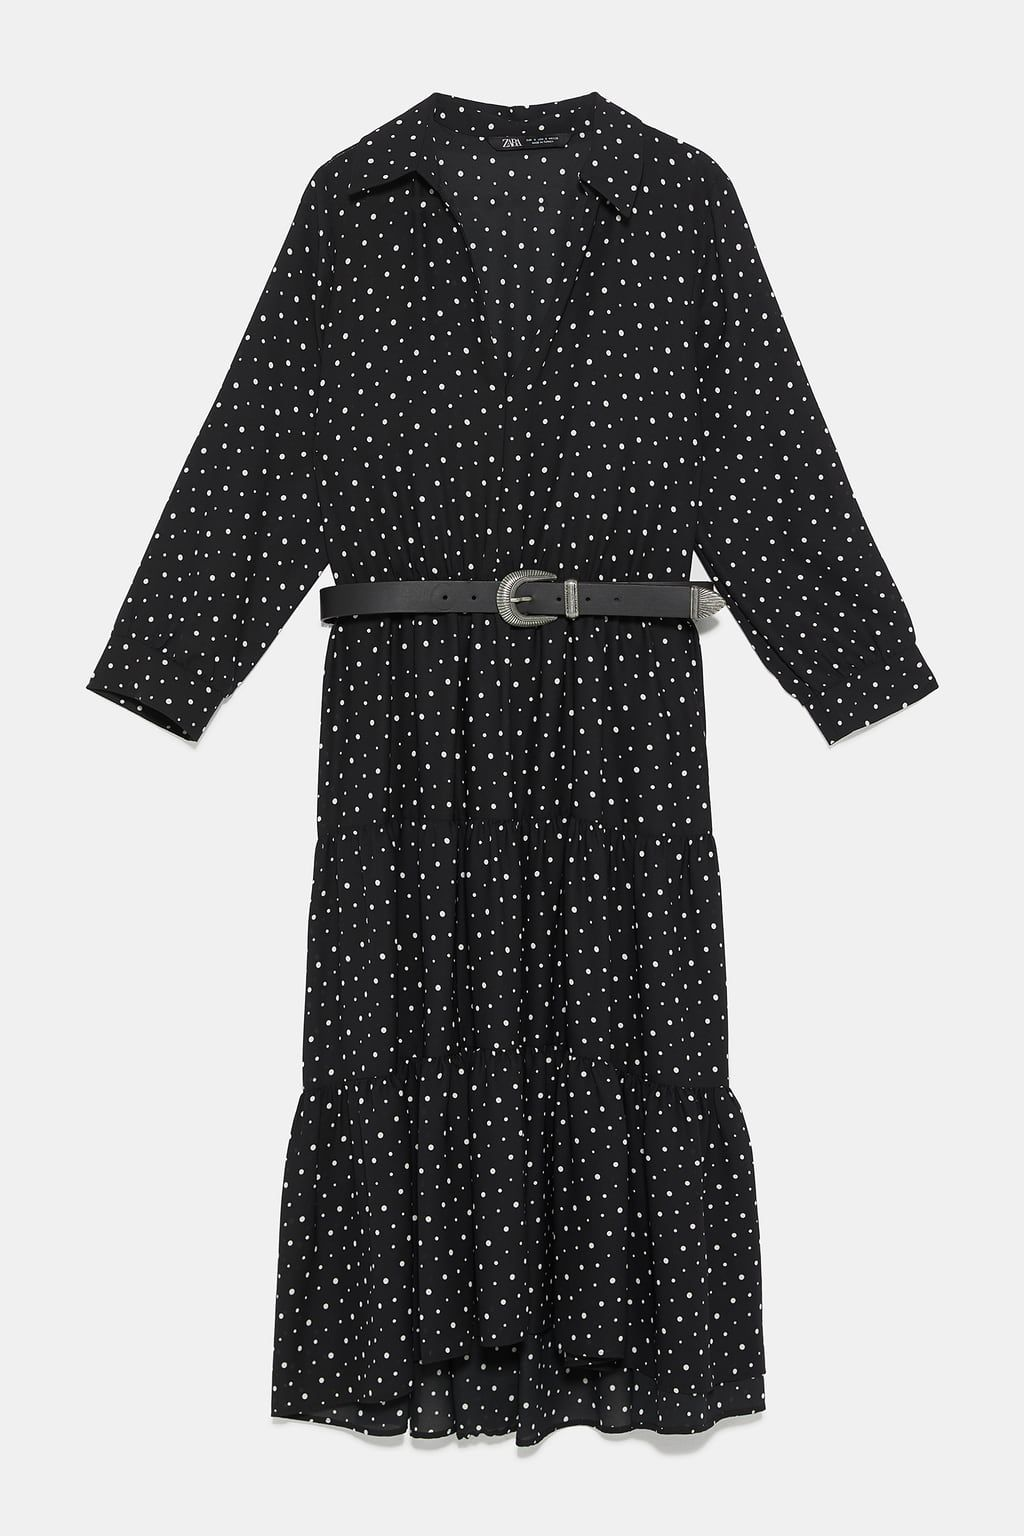 3d699191 Polka dot dress with belt in 2019 | Outfits | Belted dress, Dresses ...